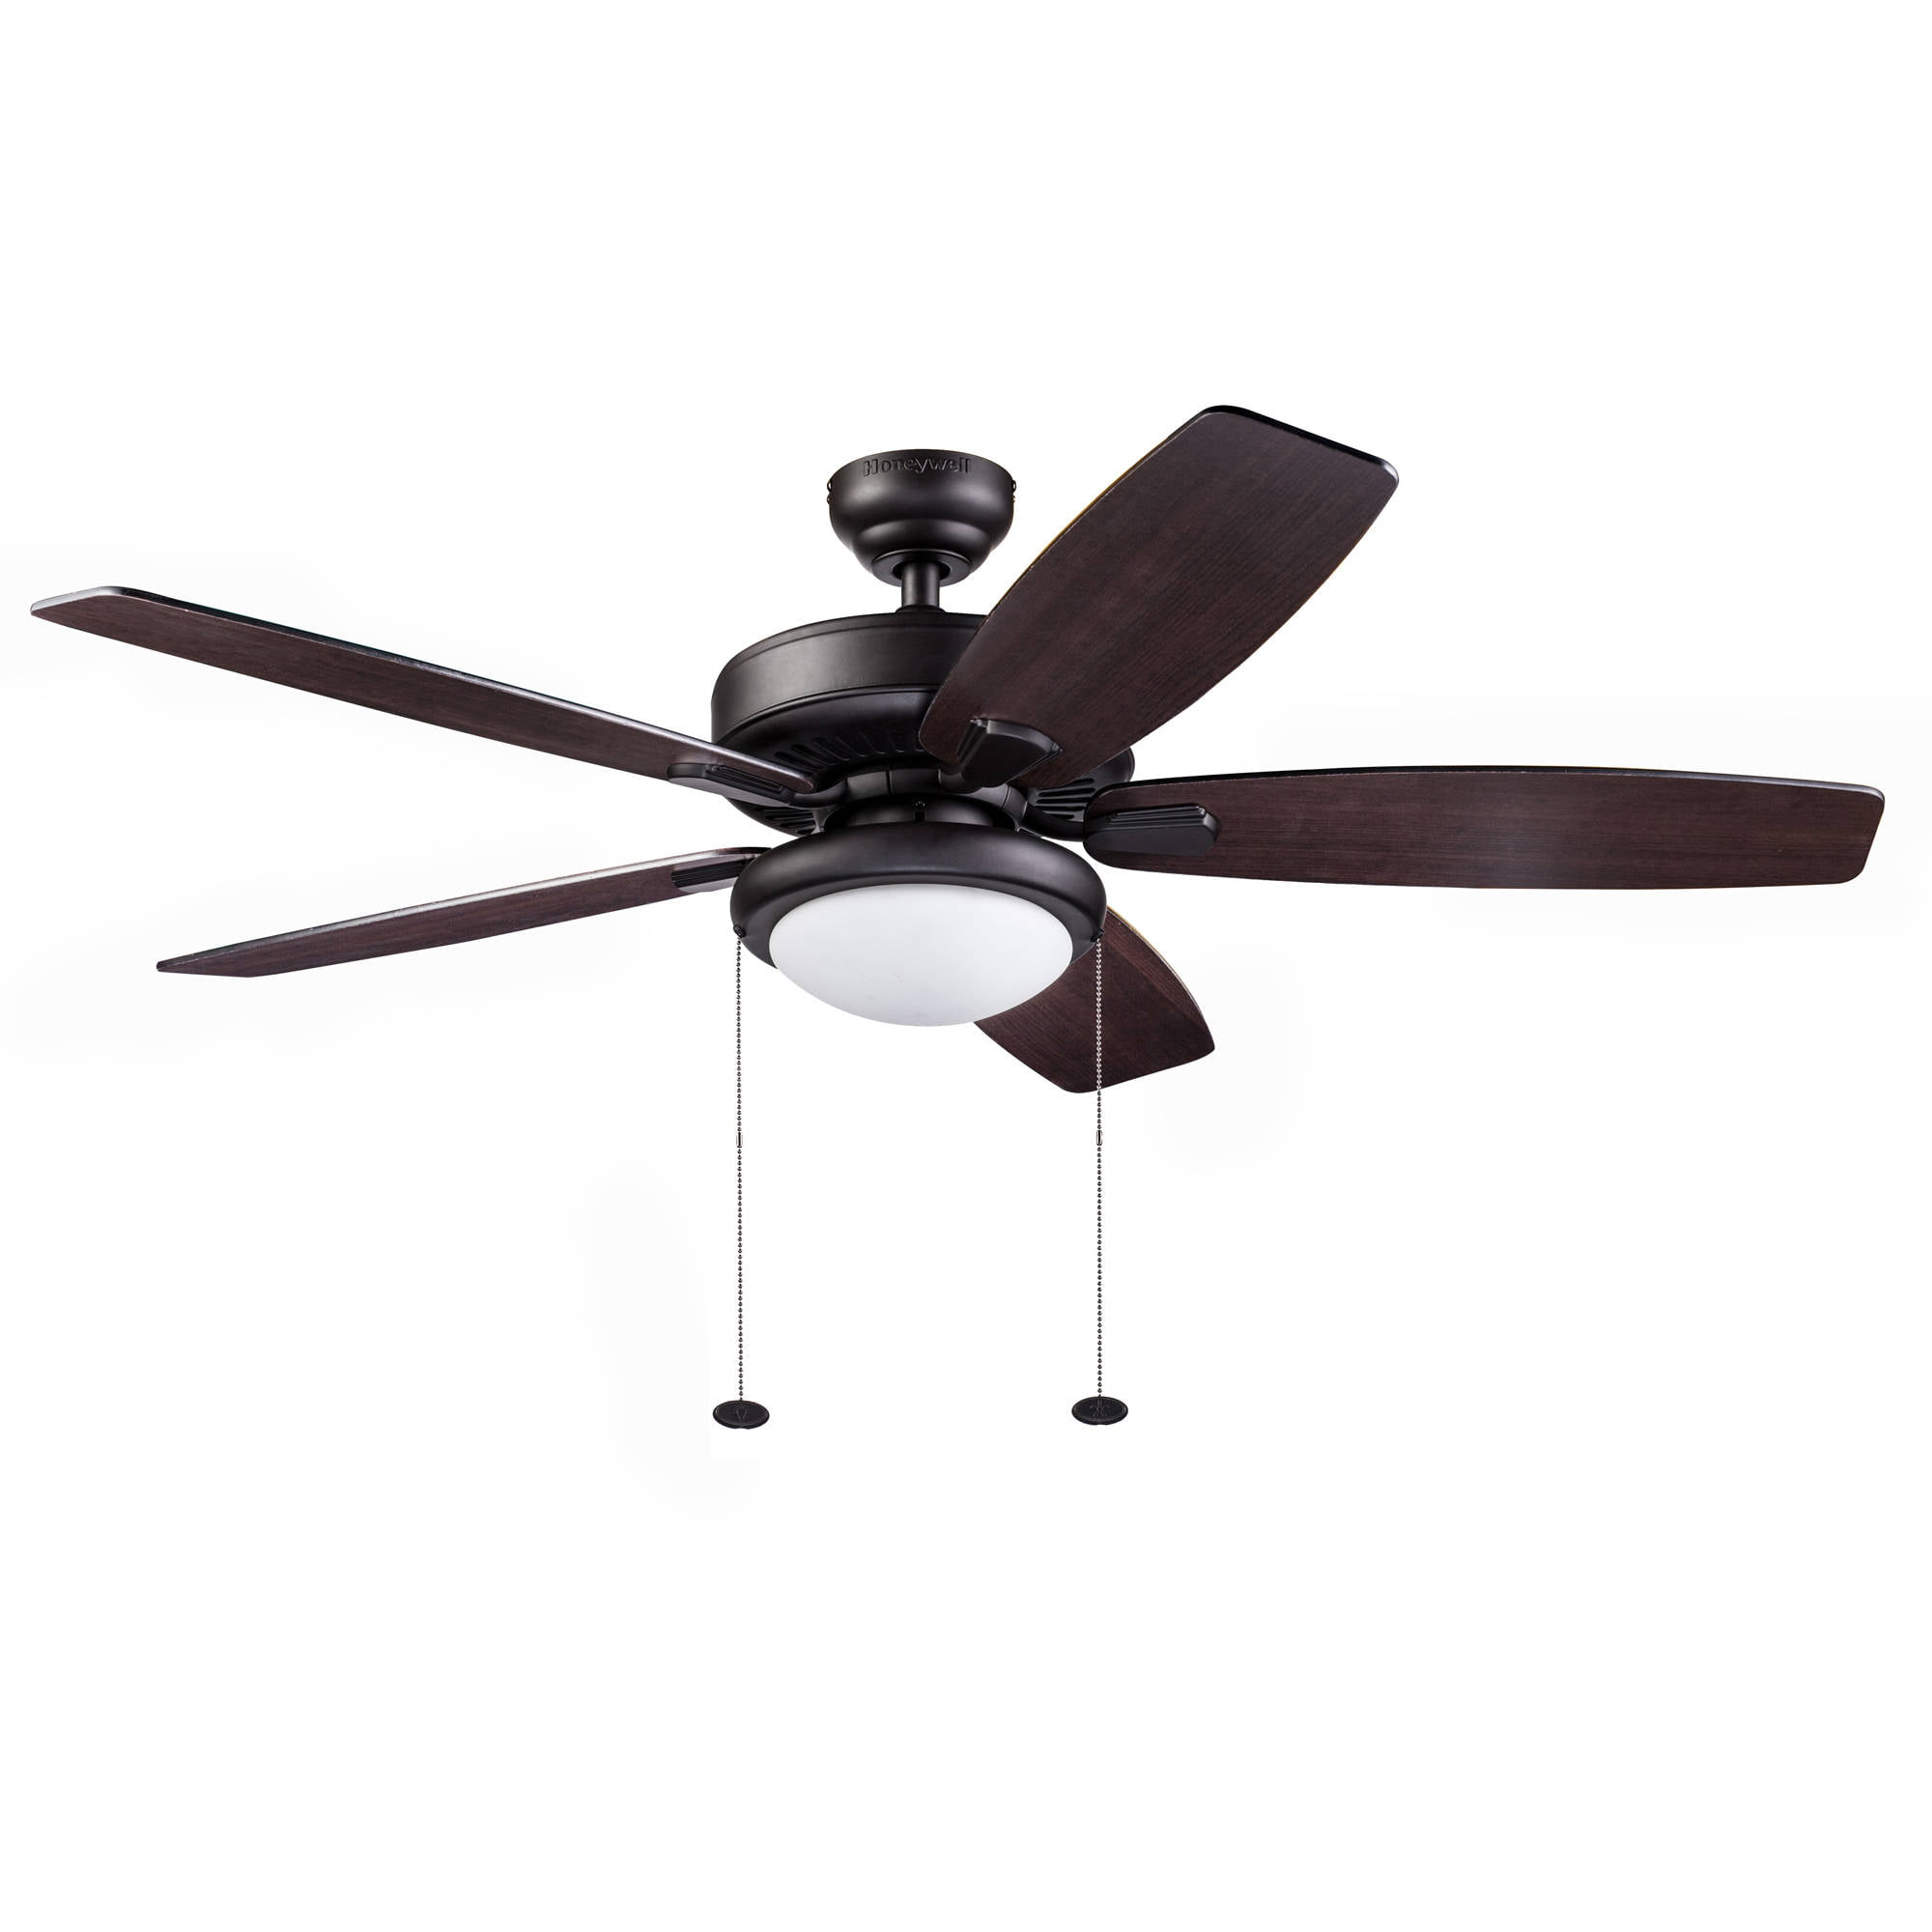 adelaide with walmart control kits fan ceiling home fixtures hunter omega fantasia light and kitchen wholesale cs lowes lighting bladeless depot fascinating australia fans remote lights elite for small tropical white modern